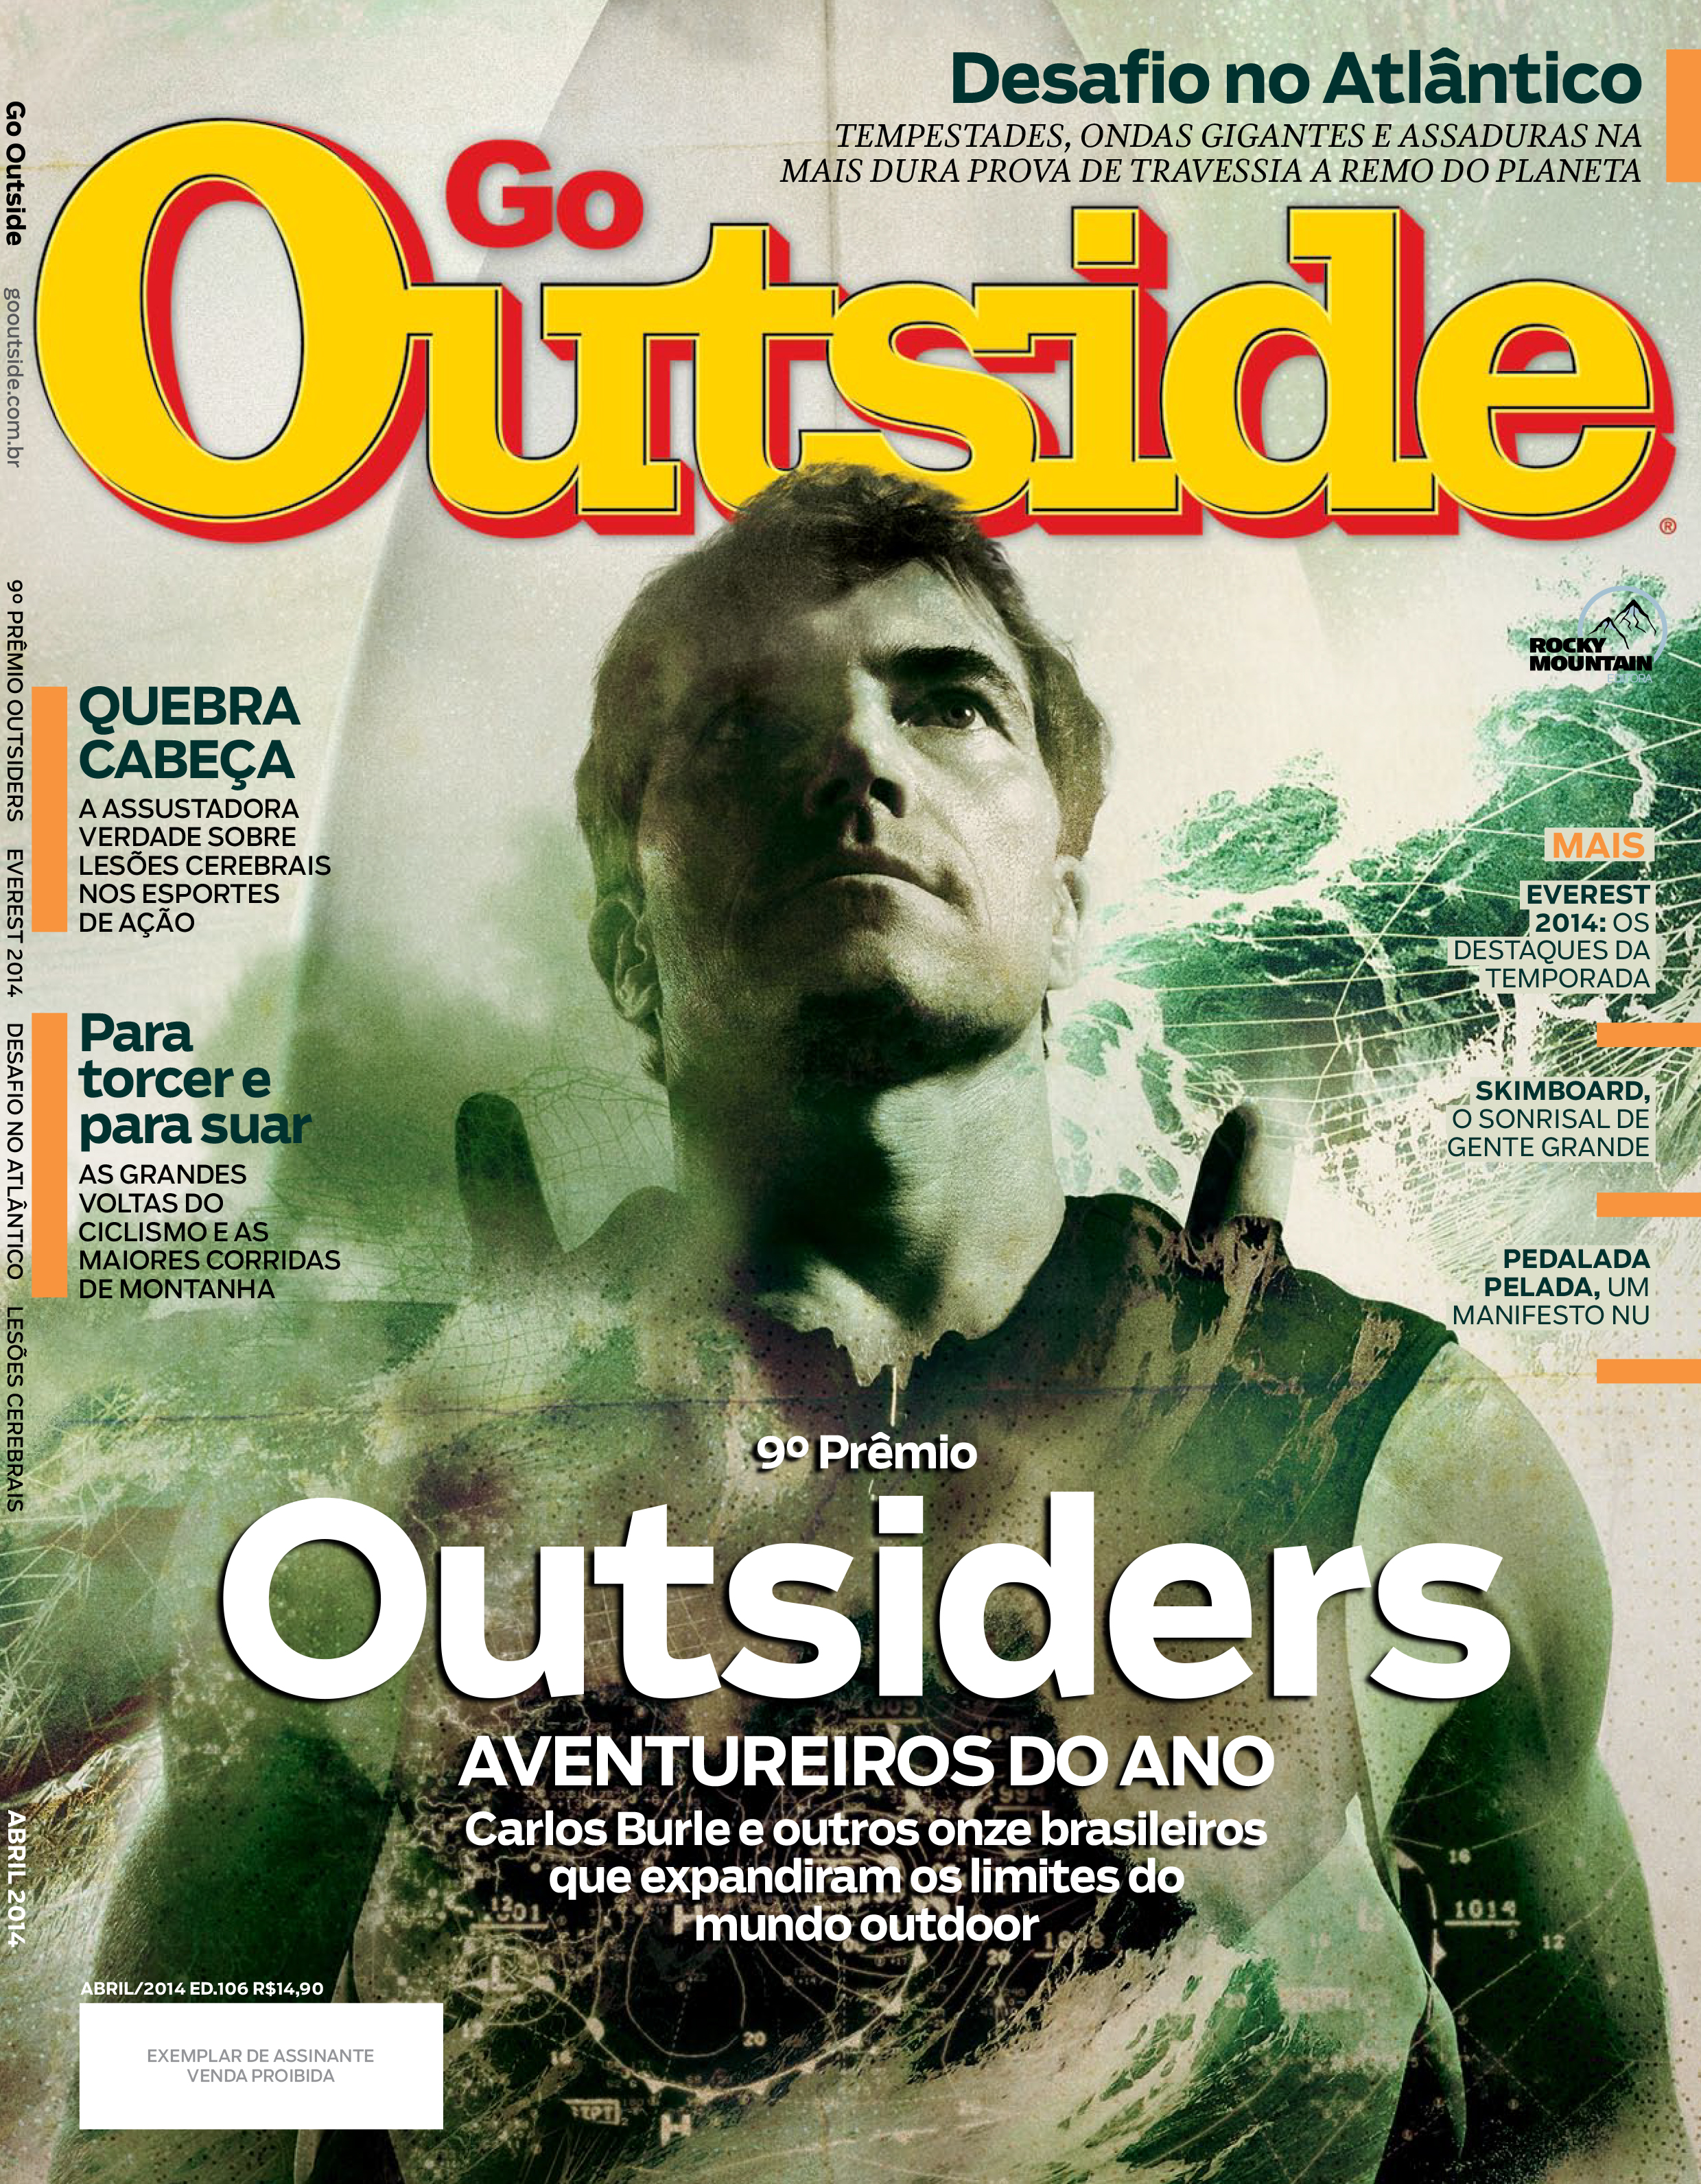 Cover for special edition of Go Outside magazine